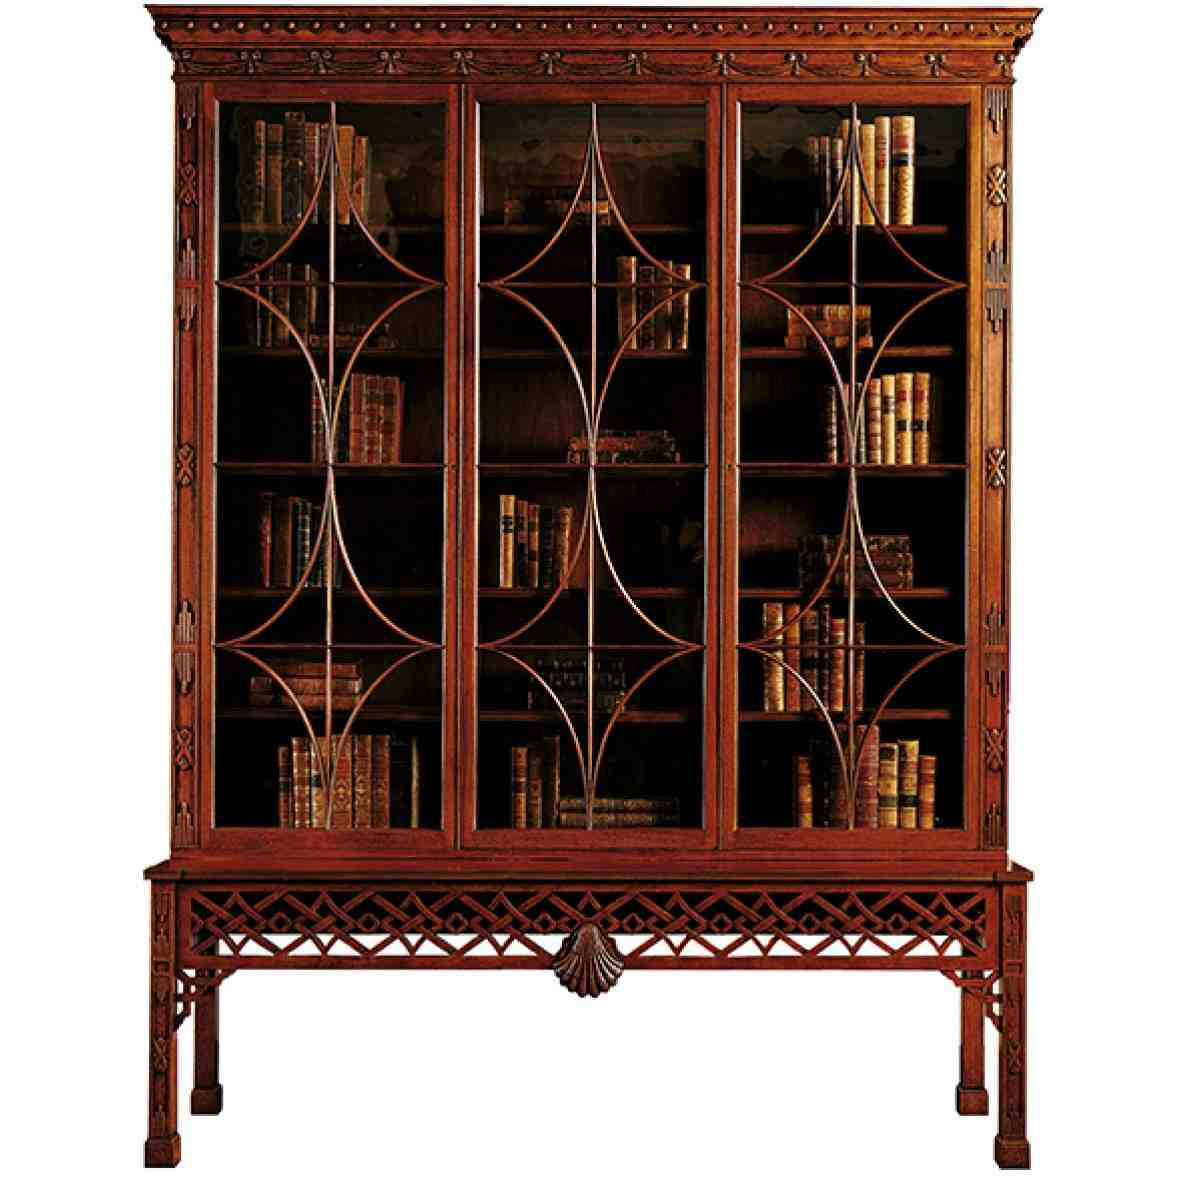 China Cabinet Prices Home Furniture Design